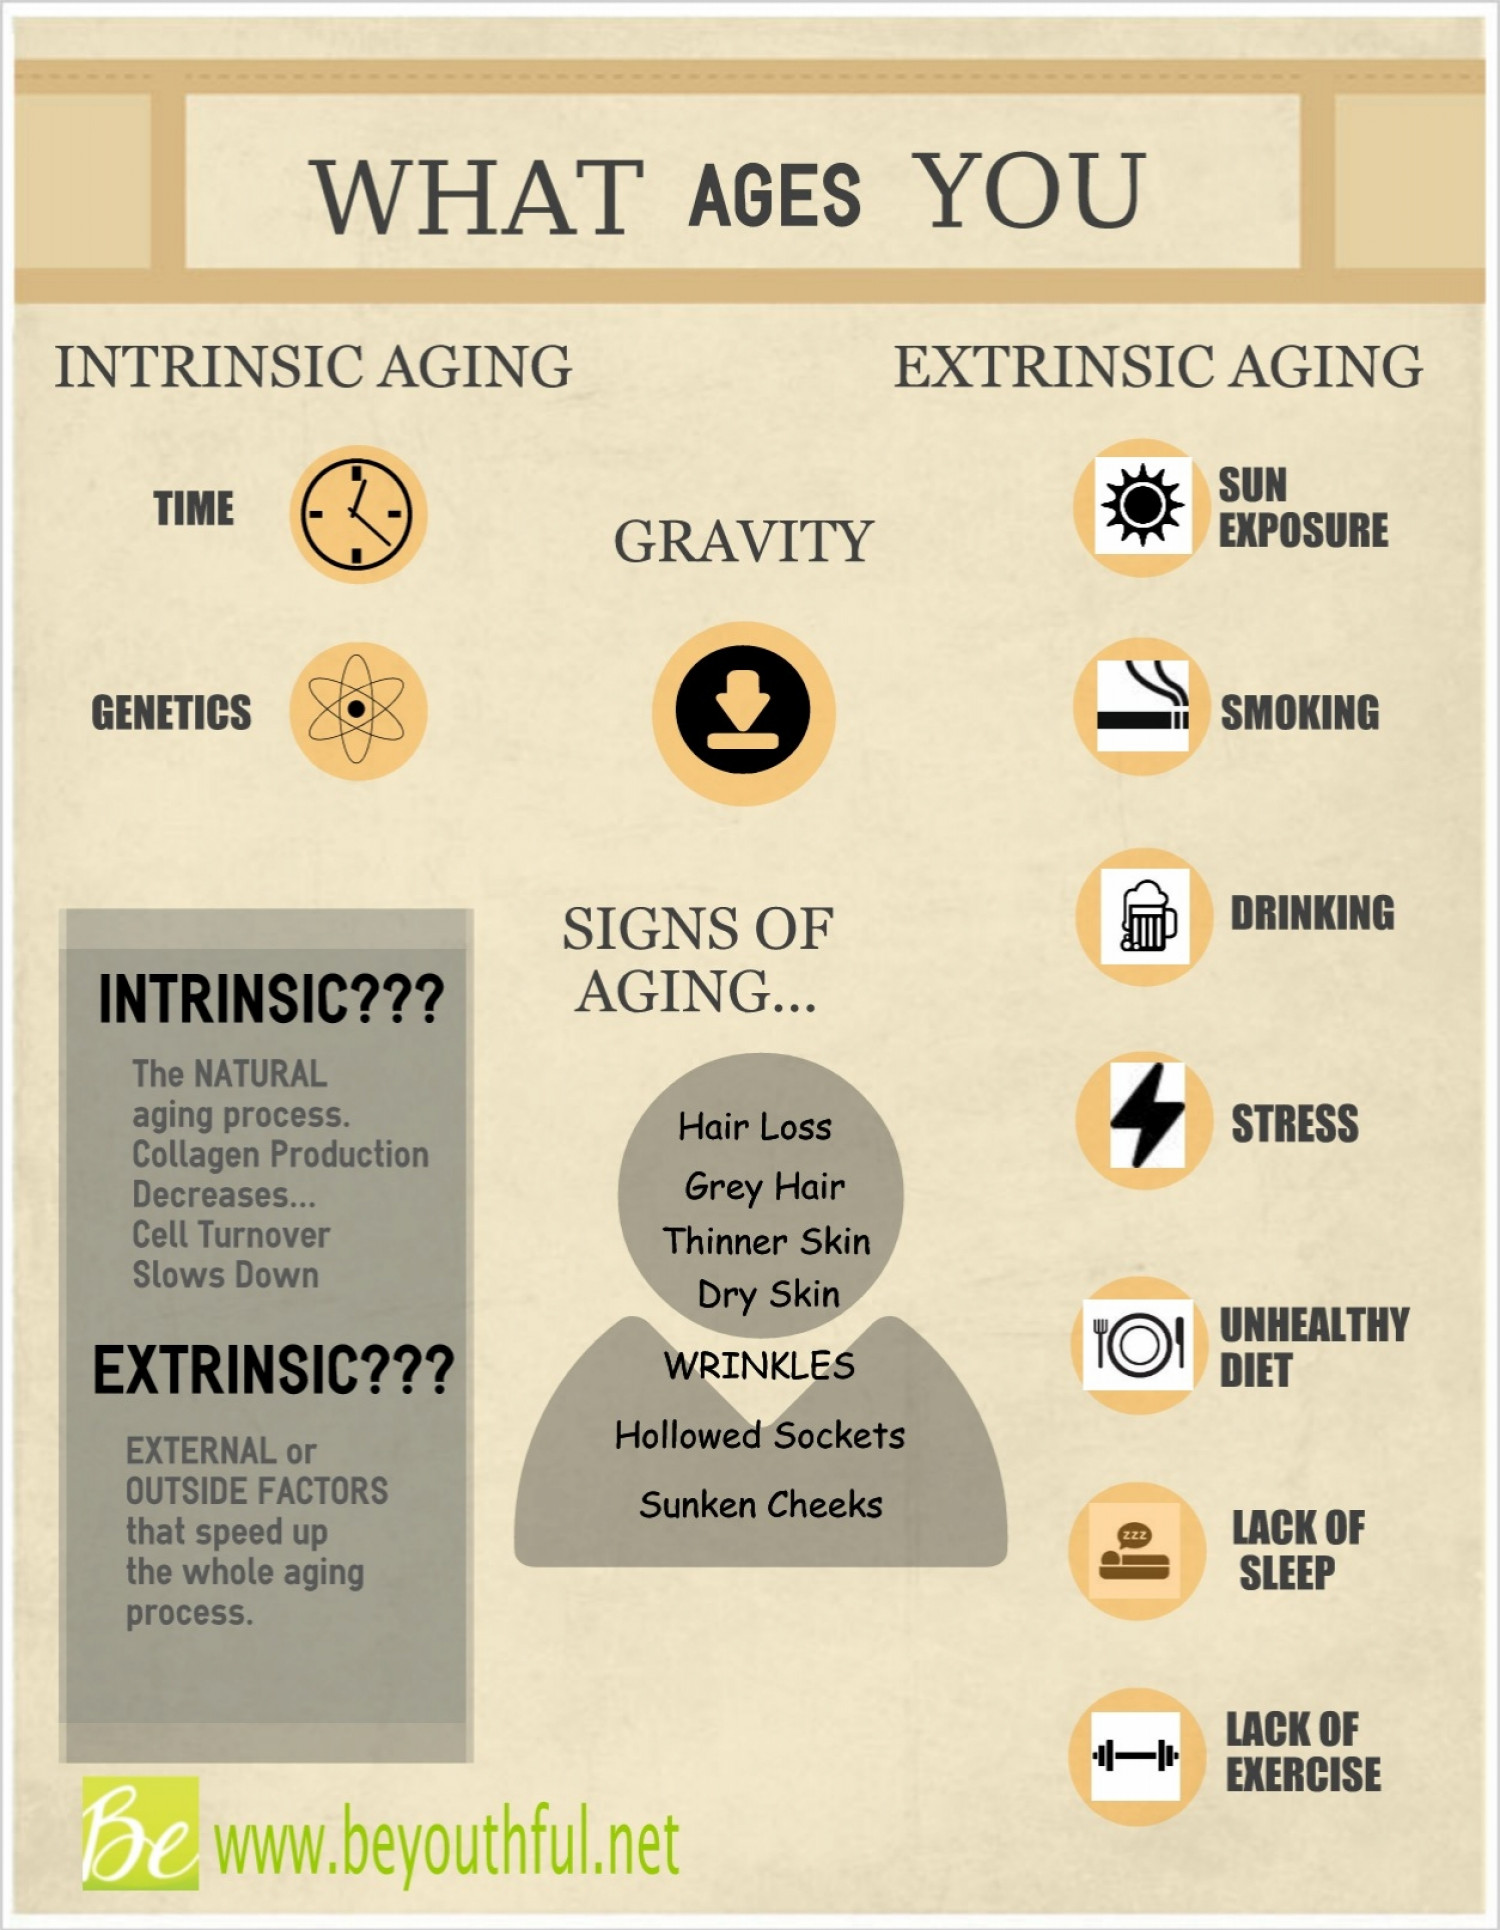 What Ages You: Intrinsic Vs. Extrinsic Infographic